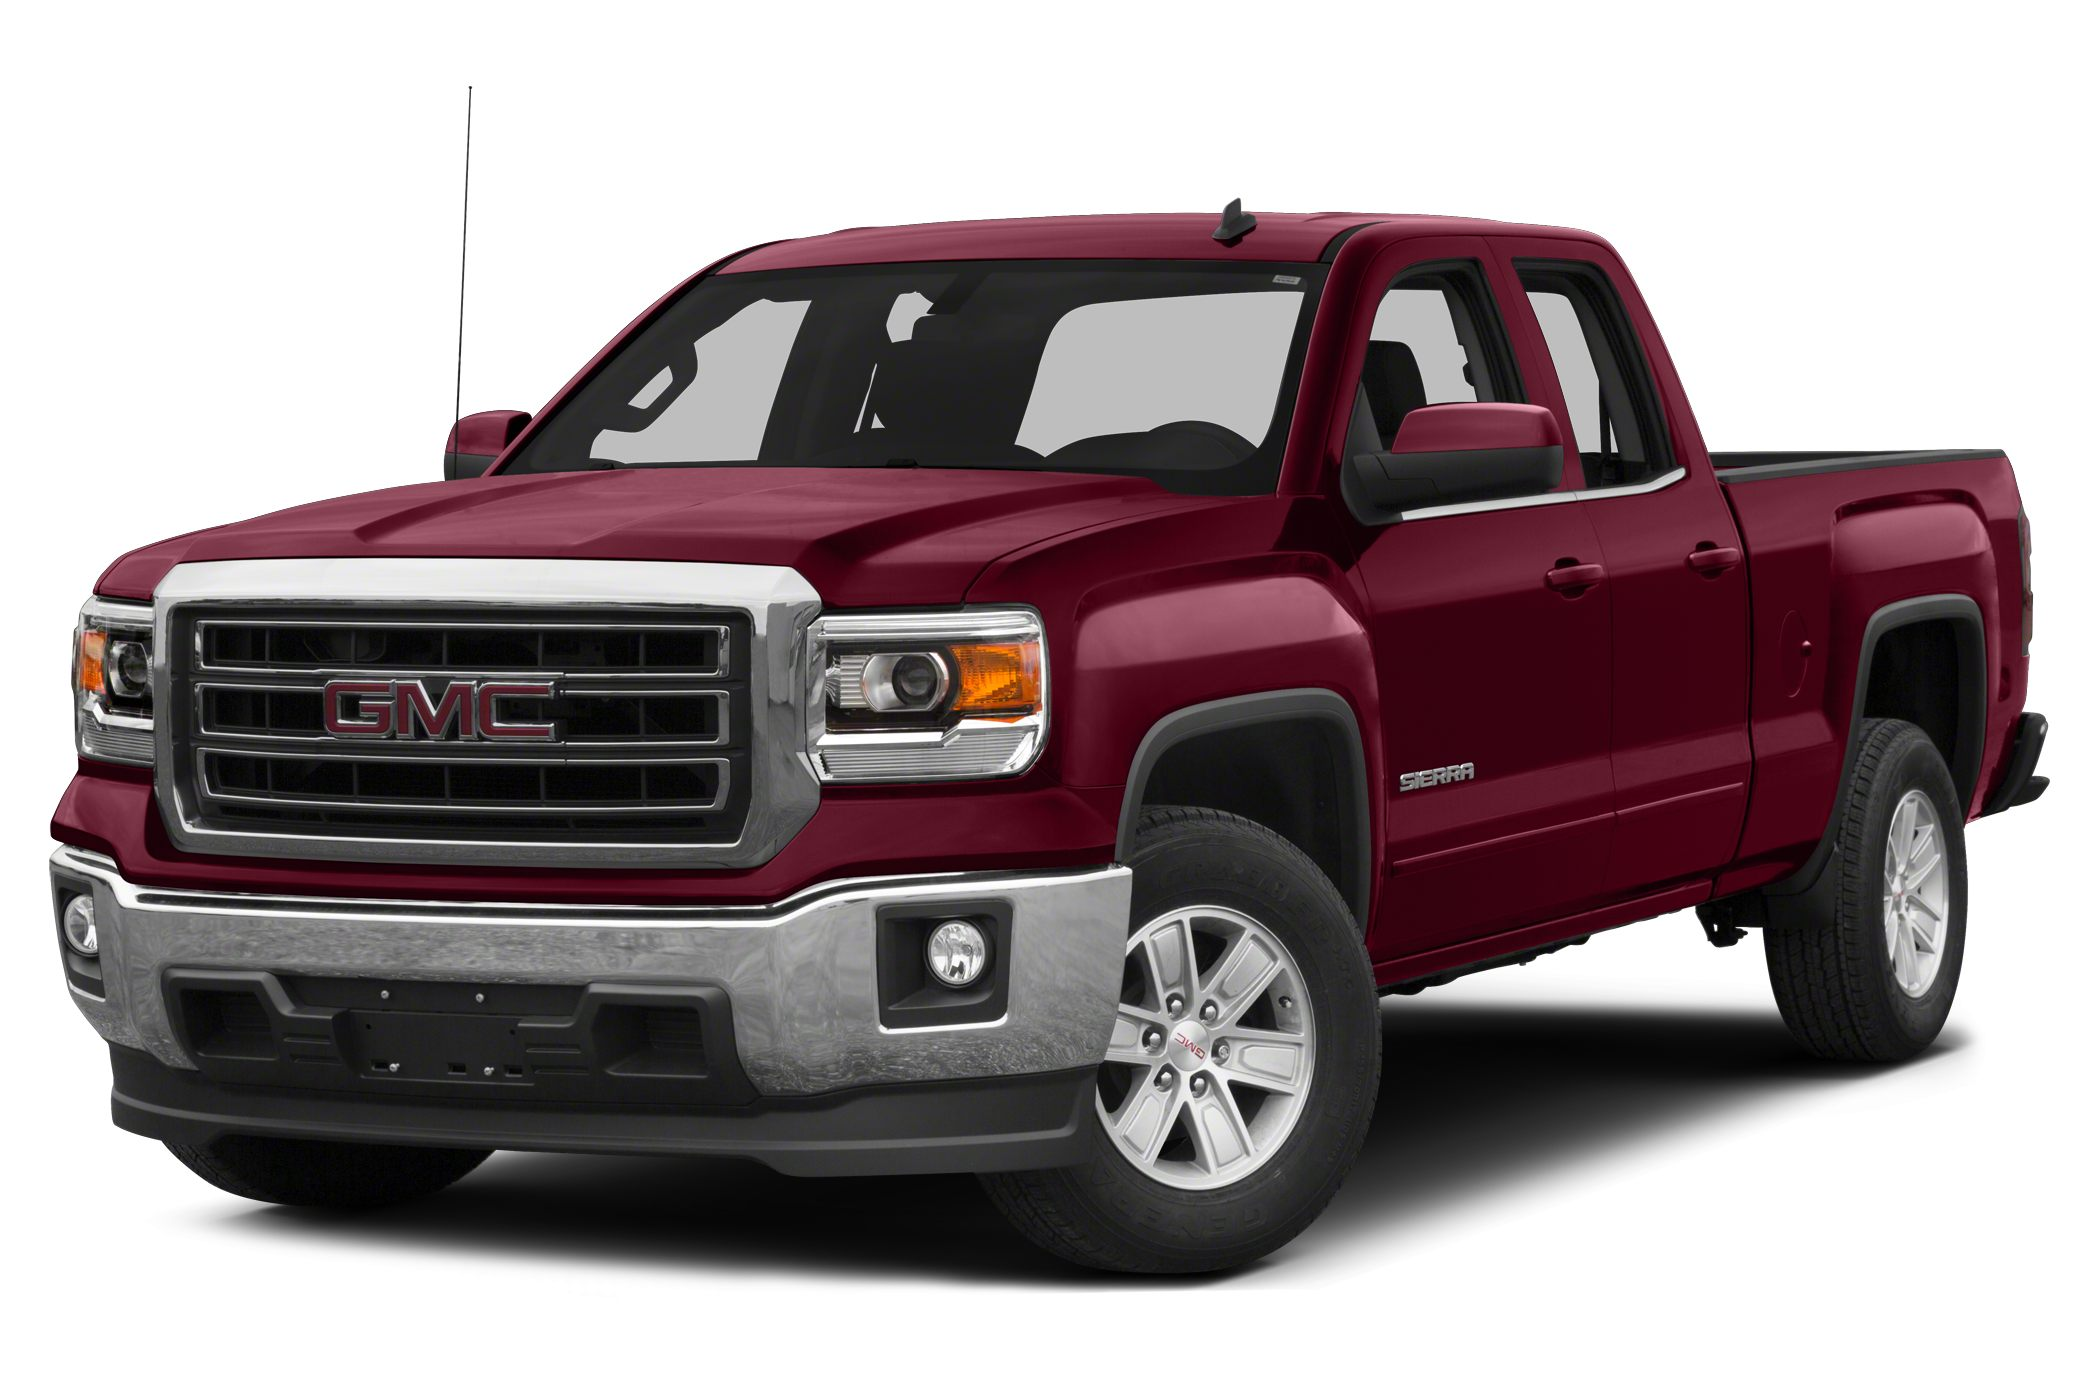 2014 GMC Sierra 1500 SLT Crew Cab Pickup for sale in Bradenton for $42,329 with 0 miles.